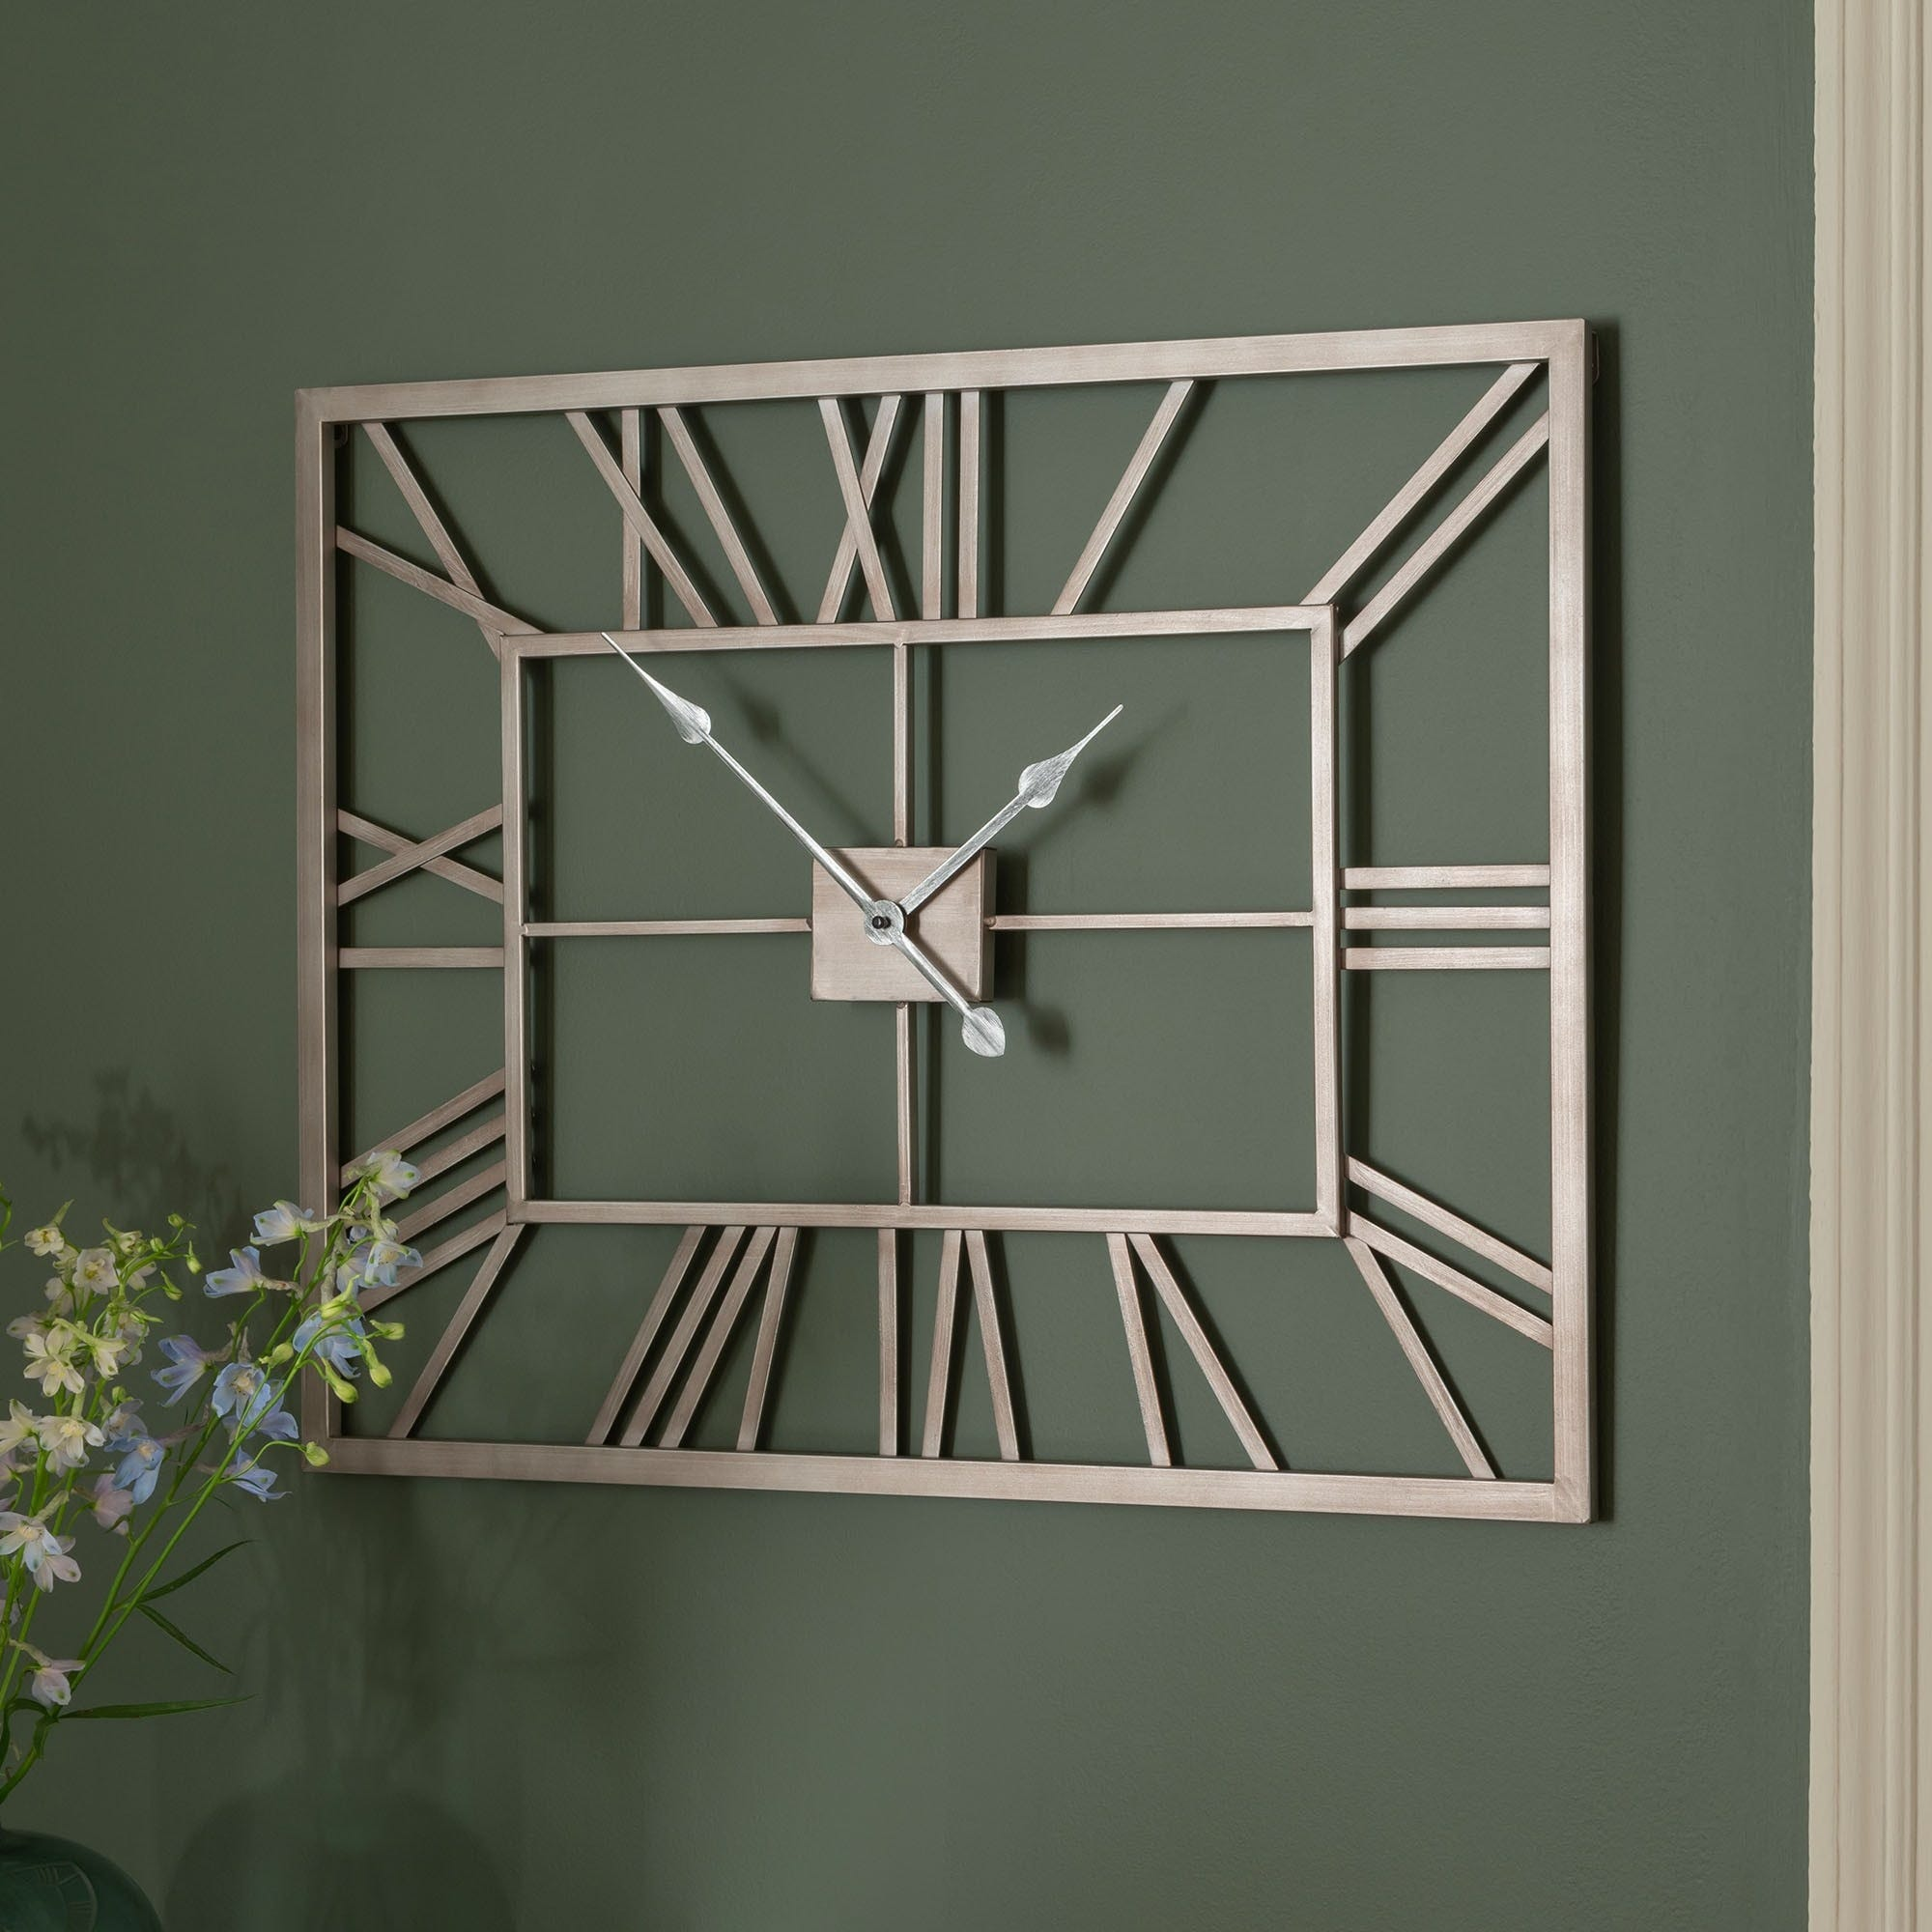 Wall Clock Price In Pakistan 3d Wall Clocks With An Avant Garde Design